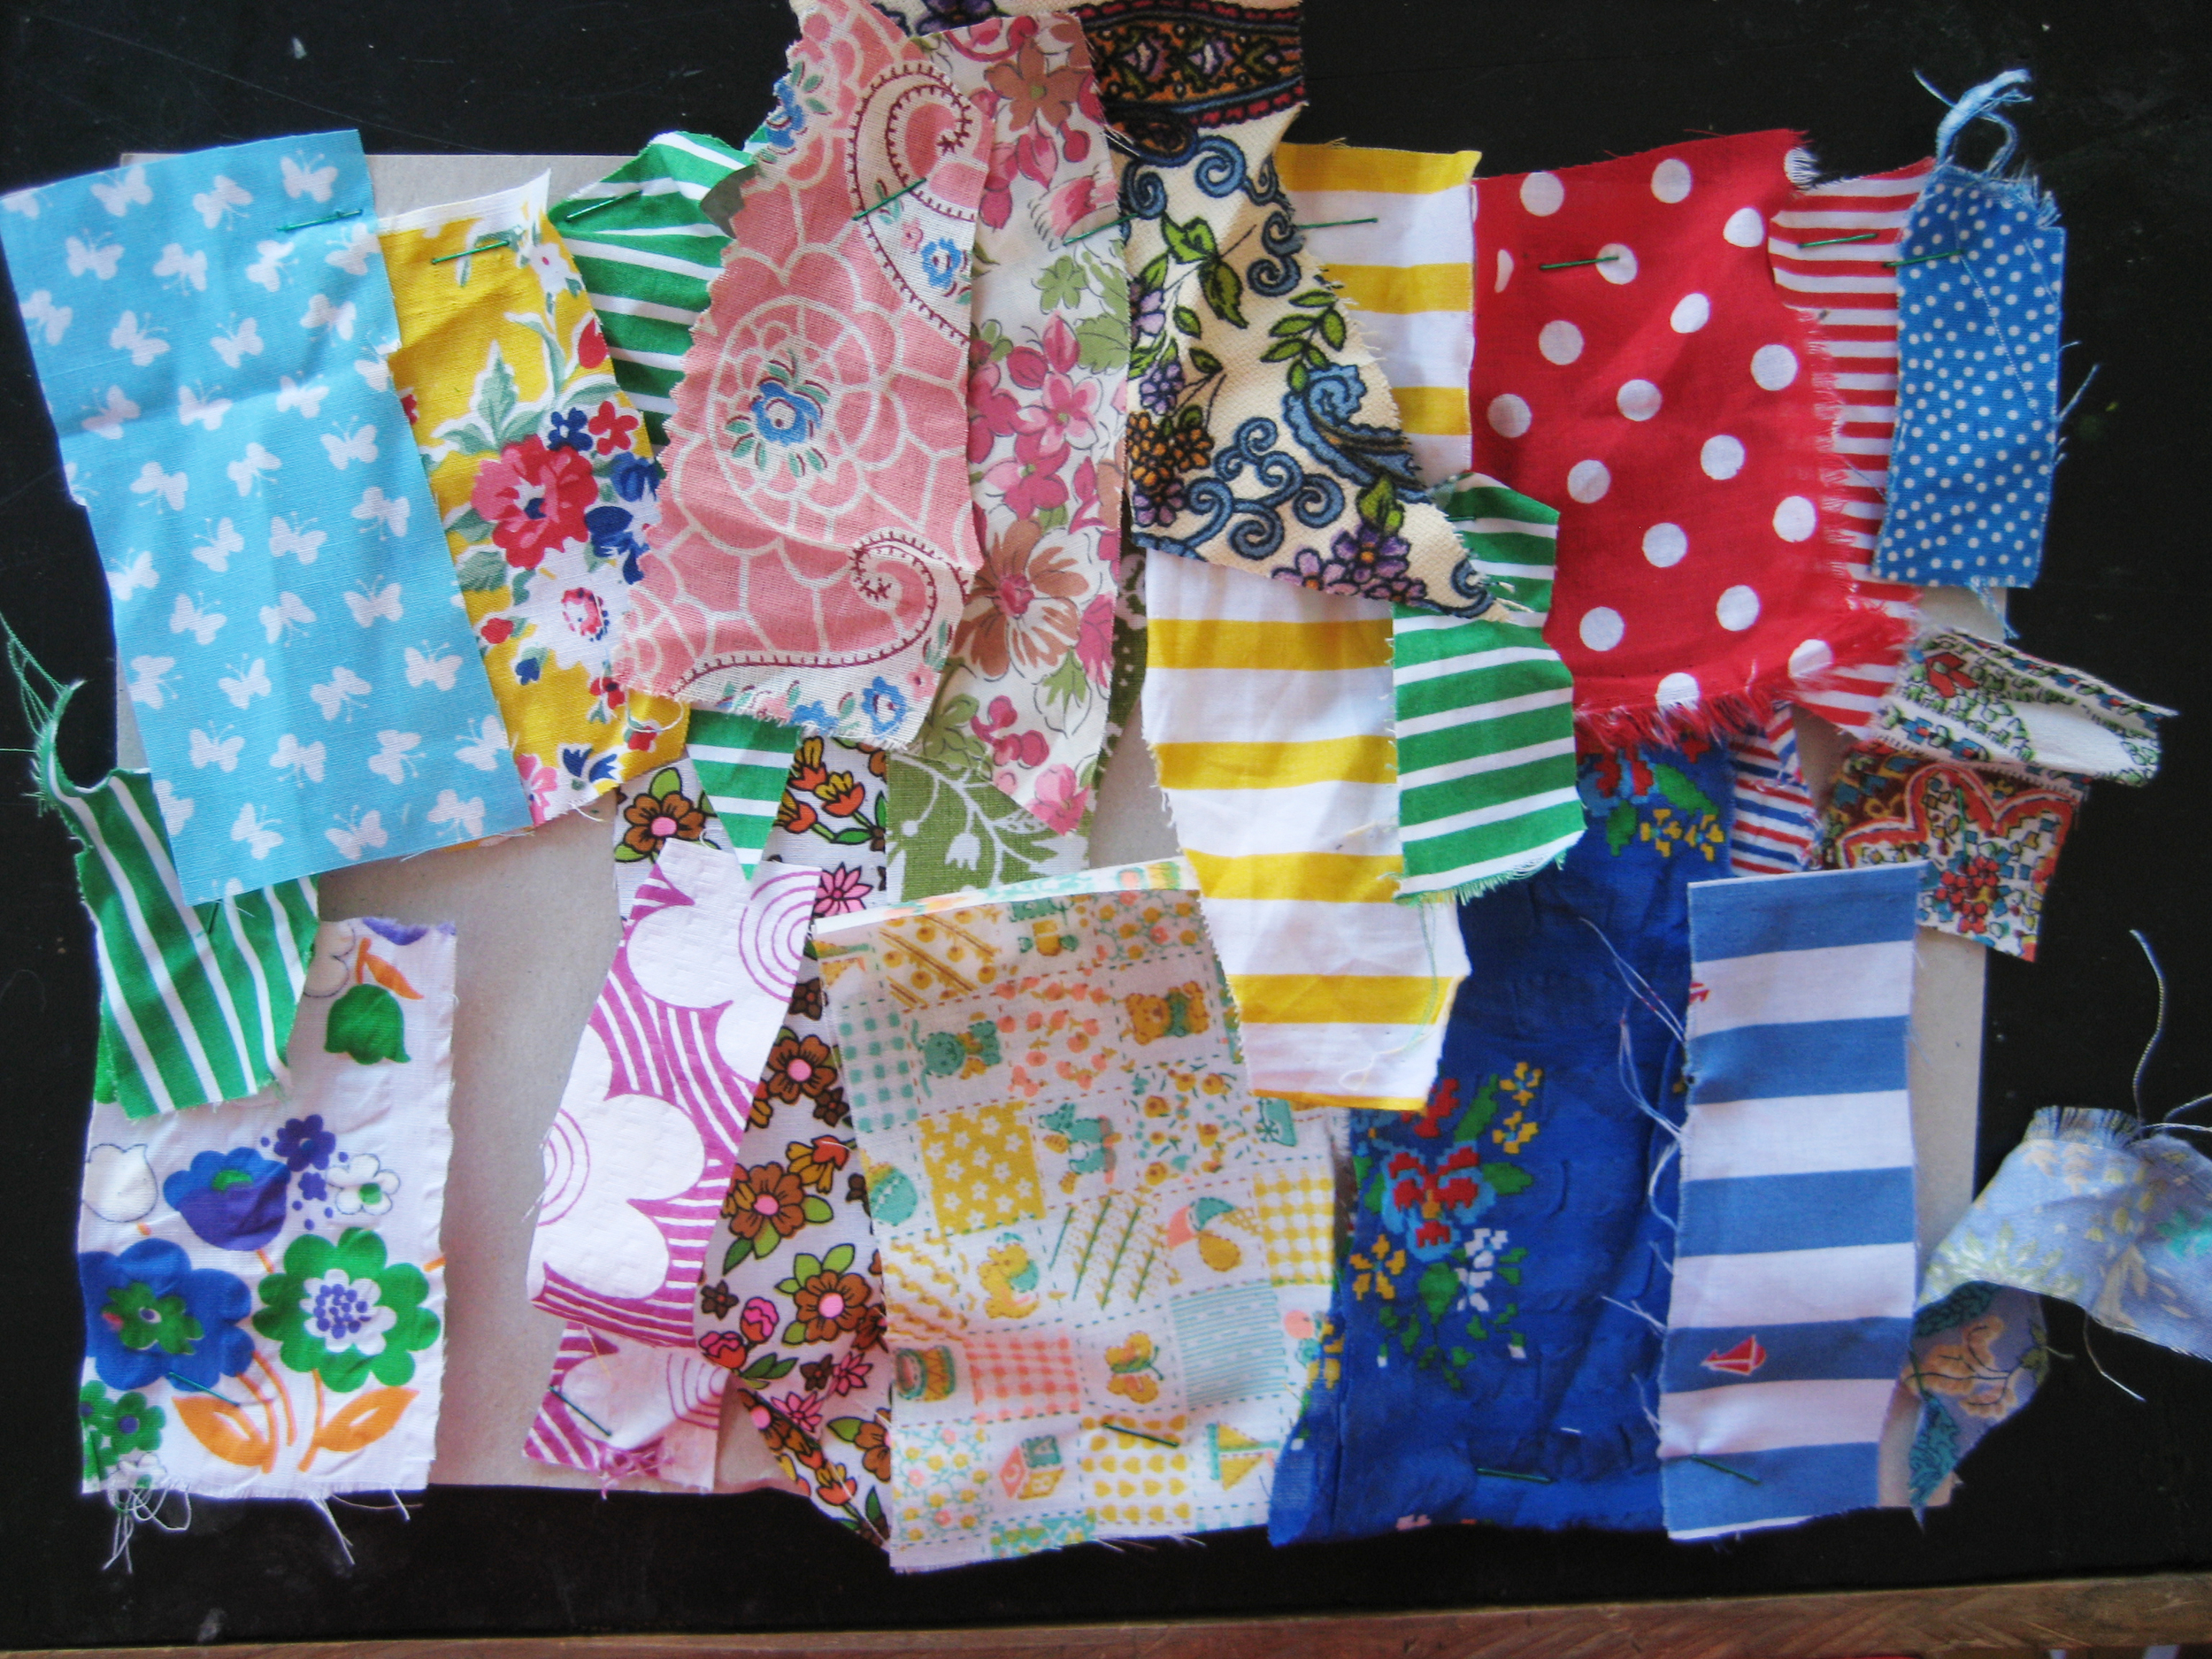 Summery cotton fabric samples for next year, already pinned to my workroom wall.